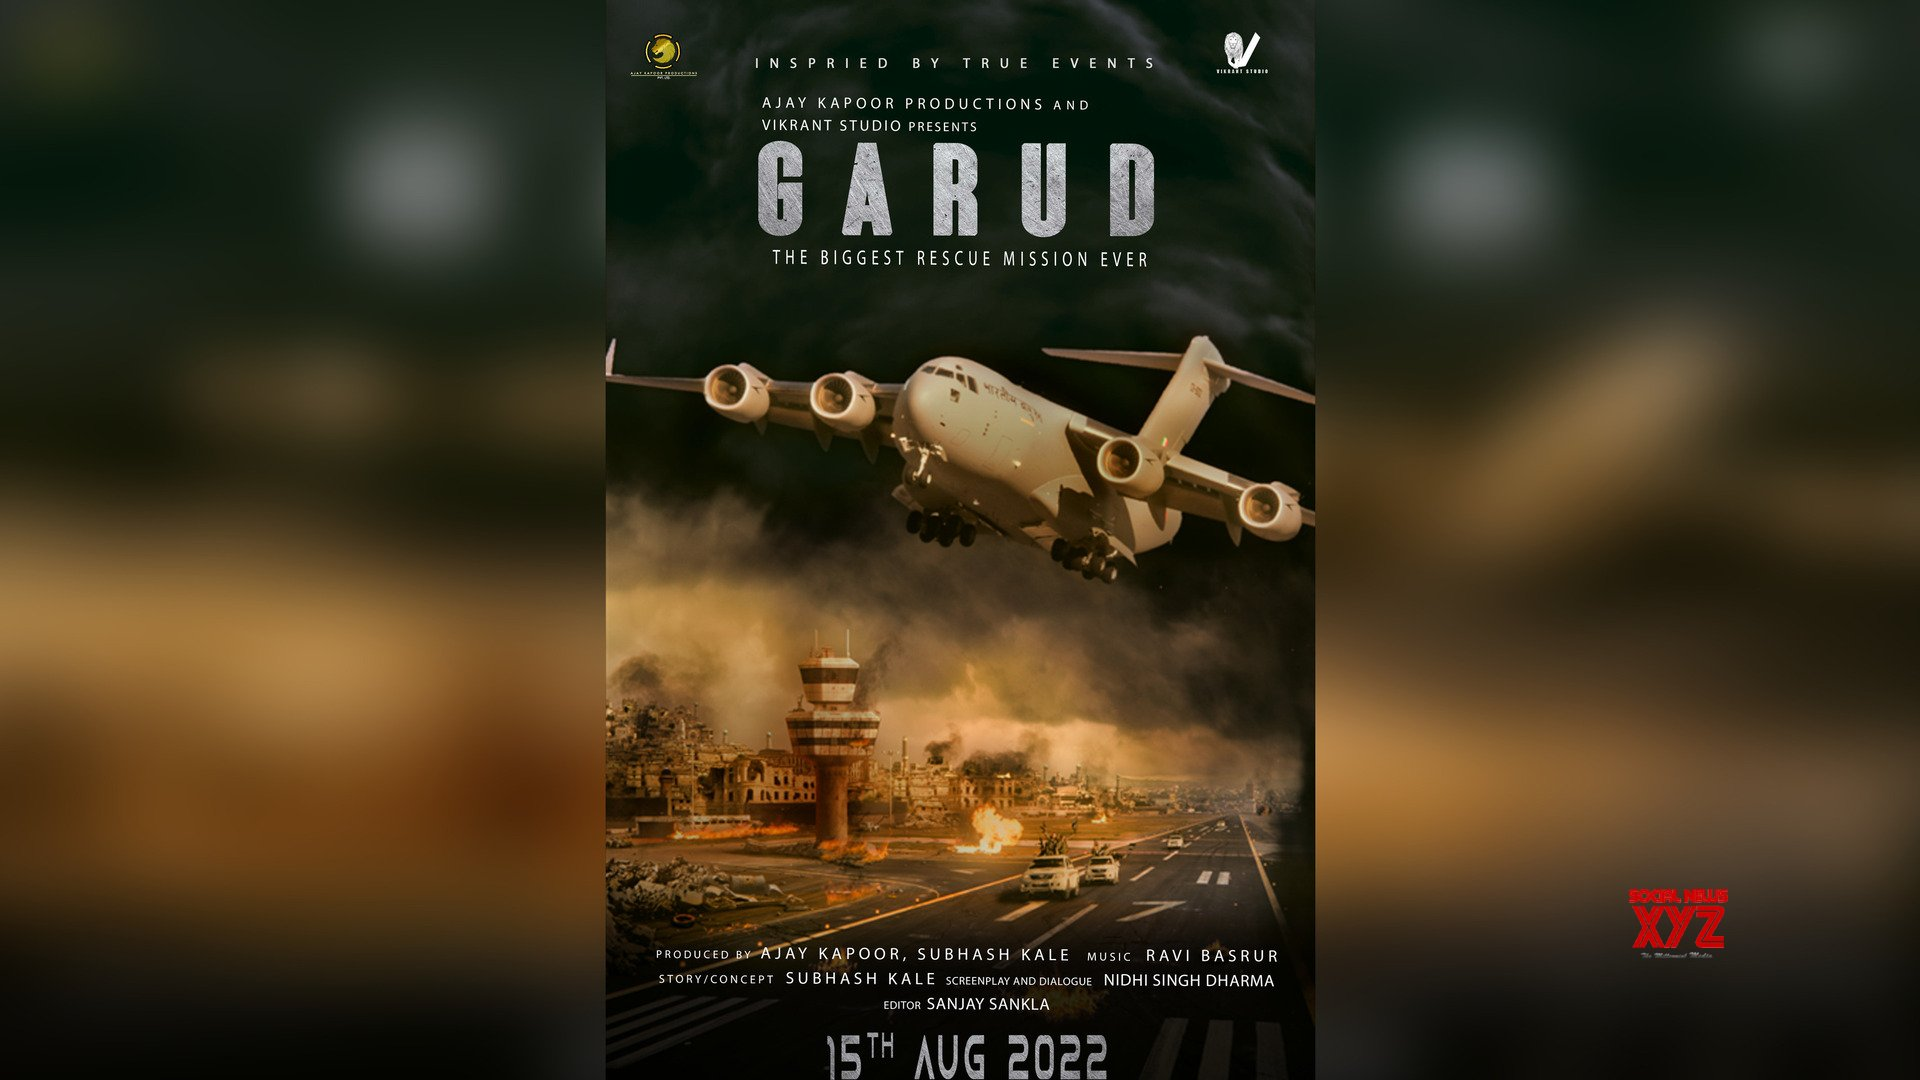 Ajay Kapoor and Subhash Kale announce 'Garud' based on Afghanistan rescue crisis